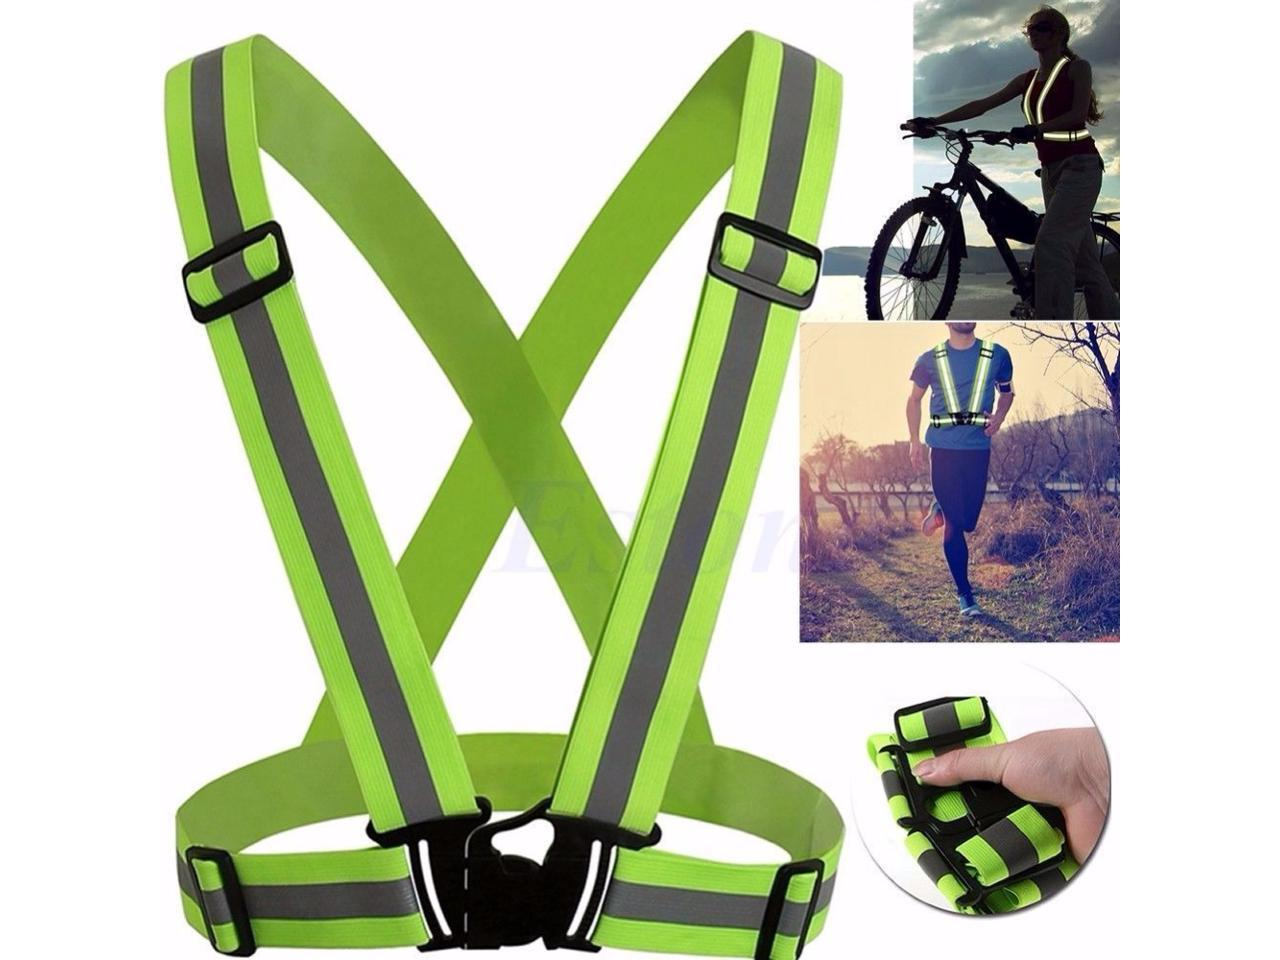 CORN Adjustable Safety Security High Visibility Reflective Vest Gear Stripes Jacket Night Running